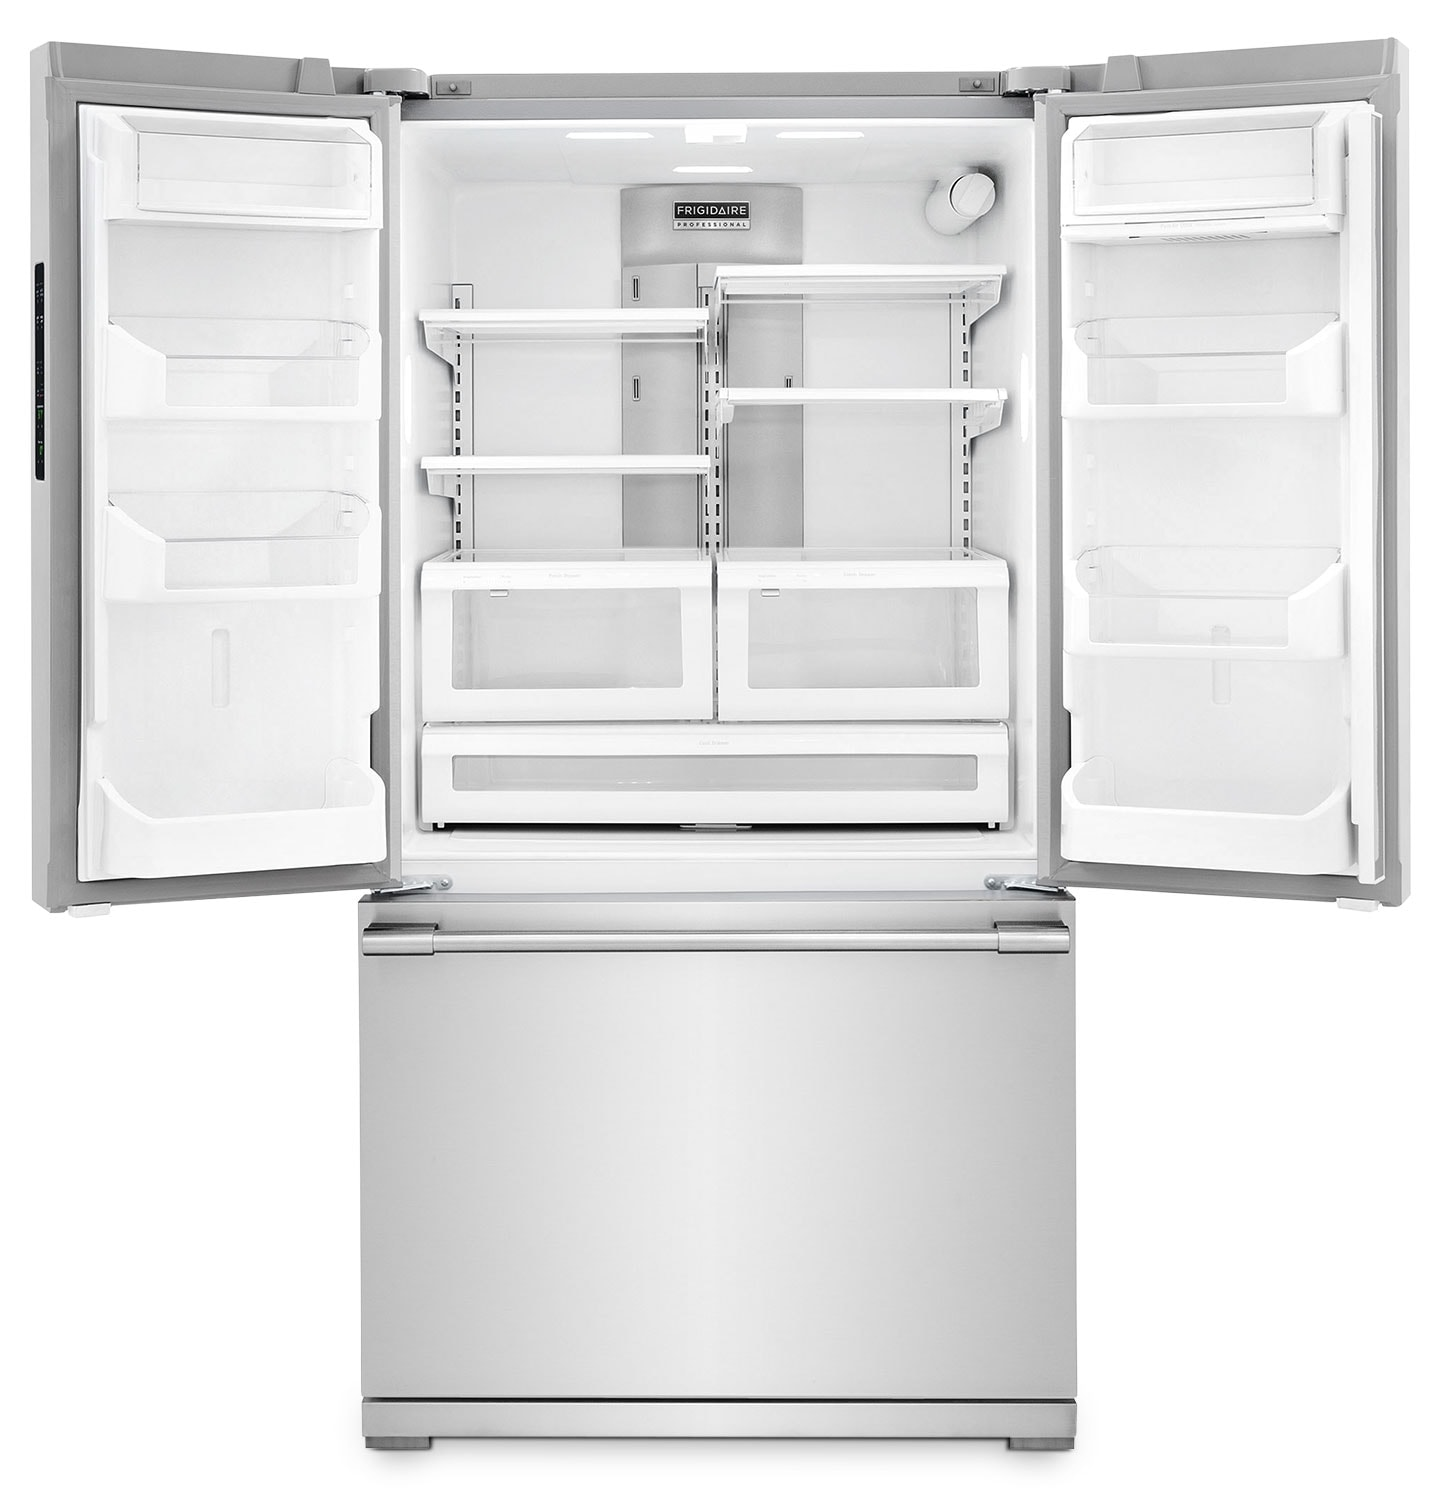 1500 #515357 Frigidaire Professional Counter Depth French Door Refrigerator (22.6  picture/photo Counter Depth Refrigerator White French Doors 31991448